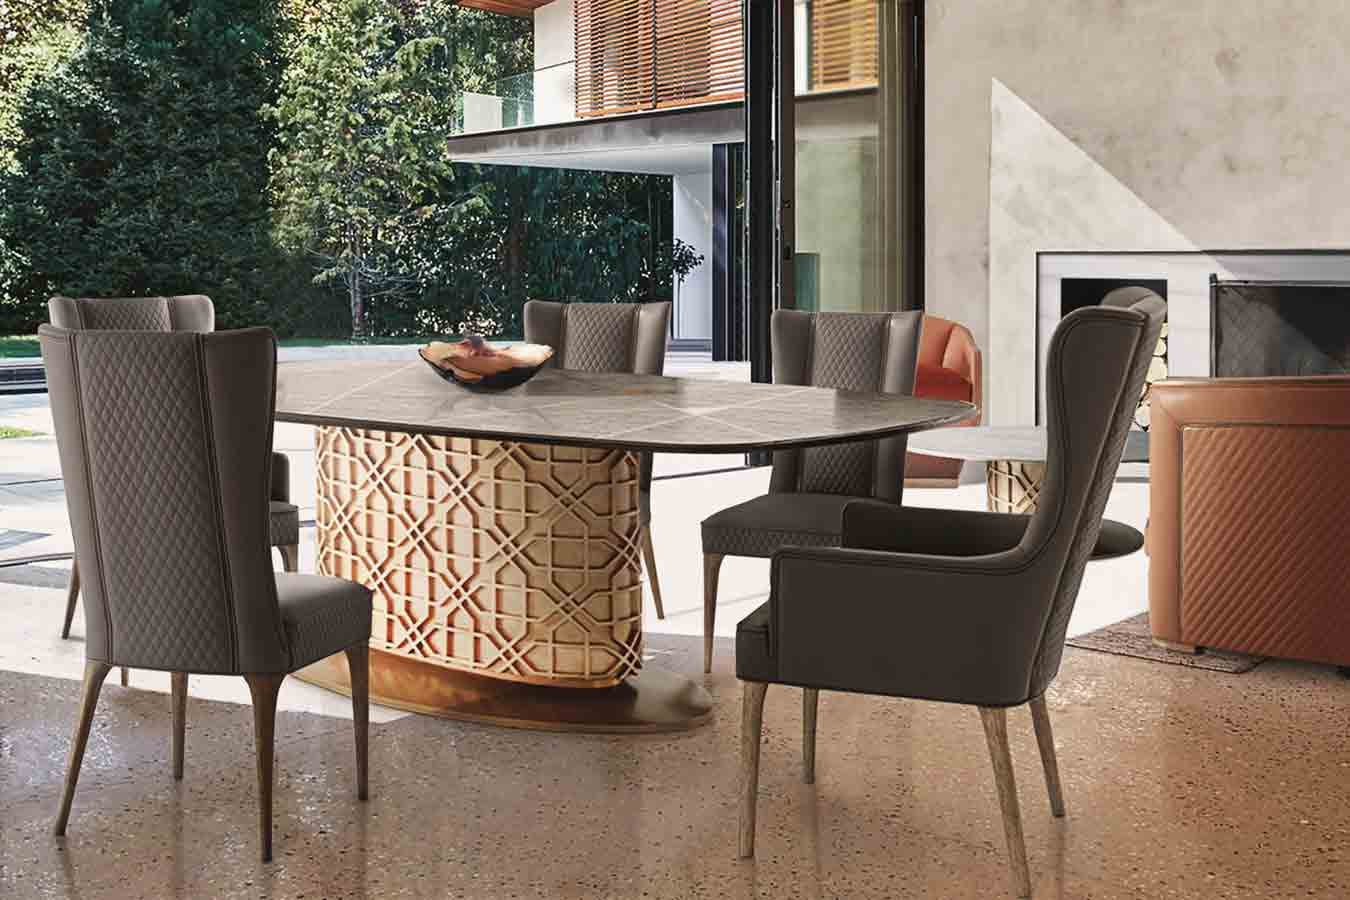 Oasis Collection Dining Room | Contemporary Luxury Exclusive Designer Modern Handcrafted Furniture | Sandton Johannesburg